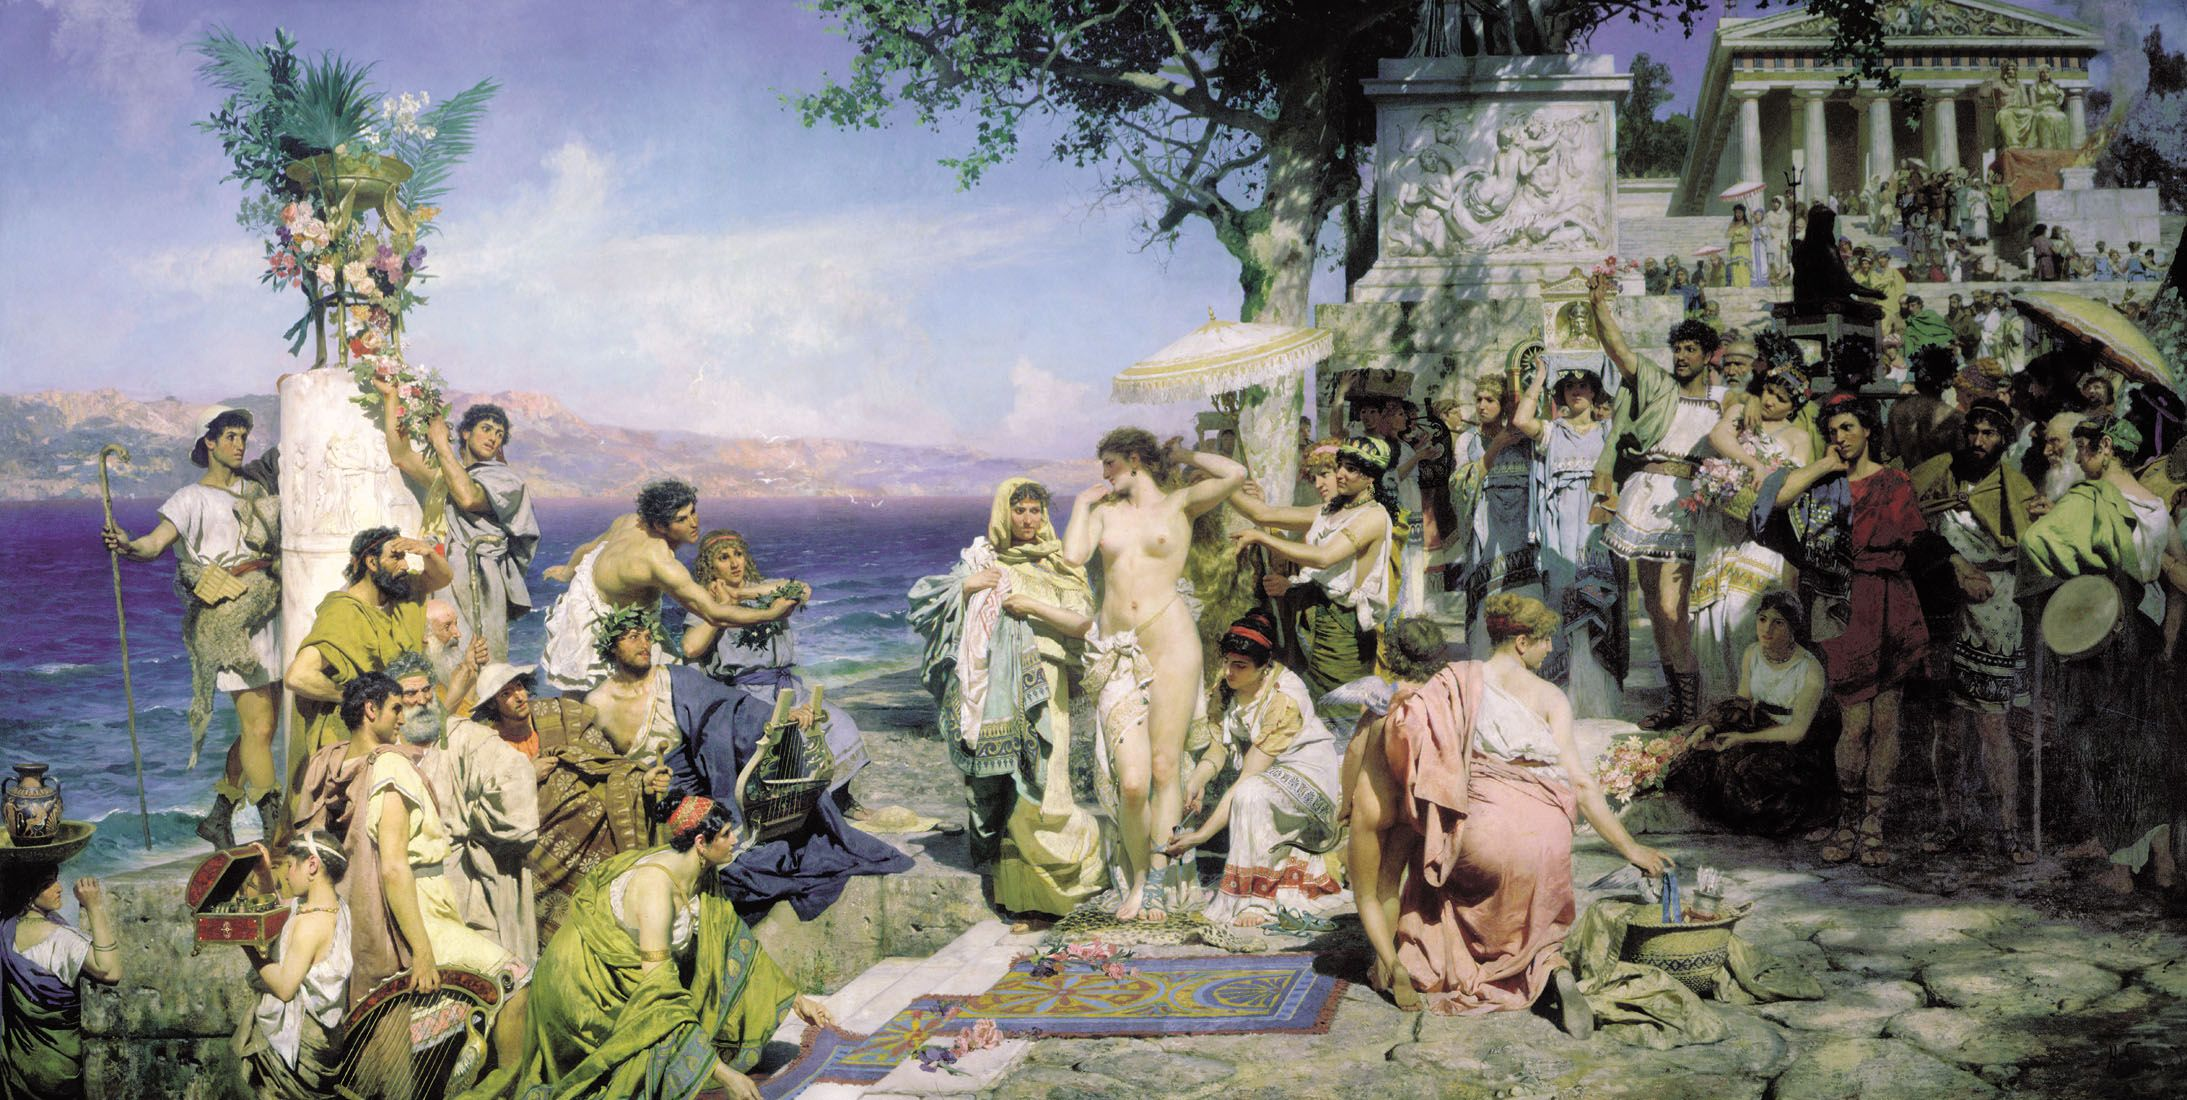 Phryne at the Poseidonia in Eleusis by Henryk Siemiradzki, c. 1889. Phryne is shown naked, preparing to step into the sea.